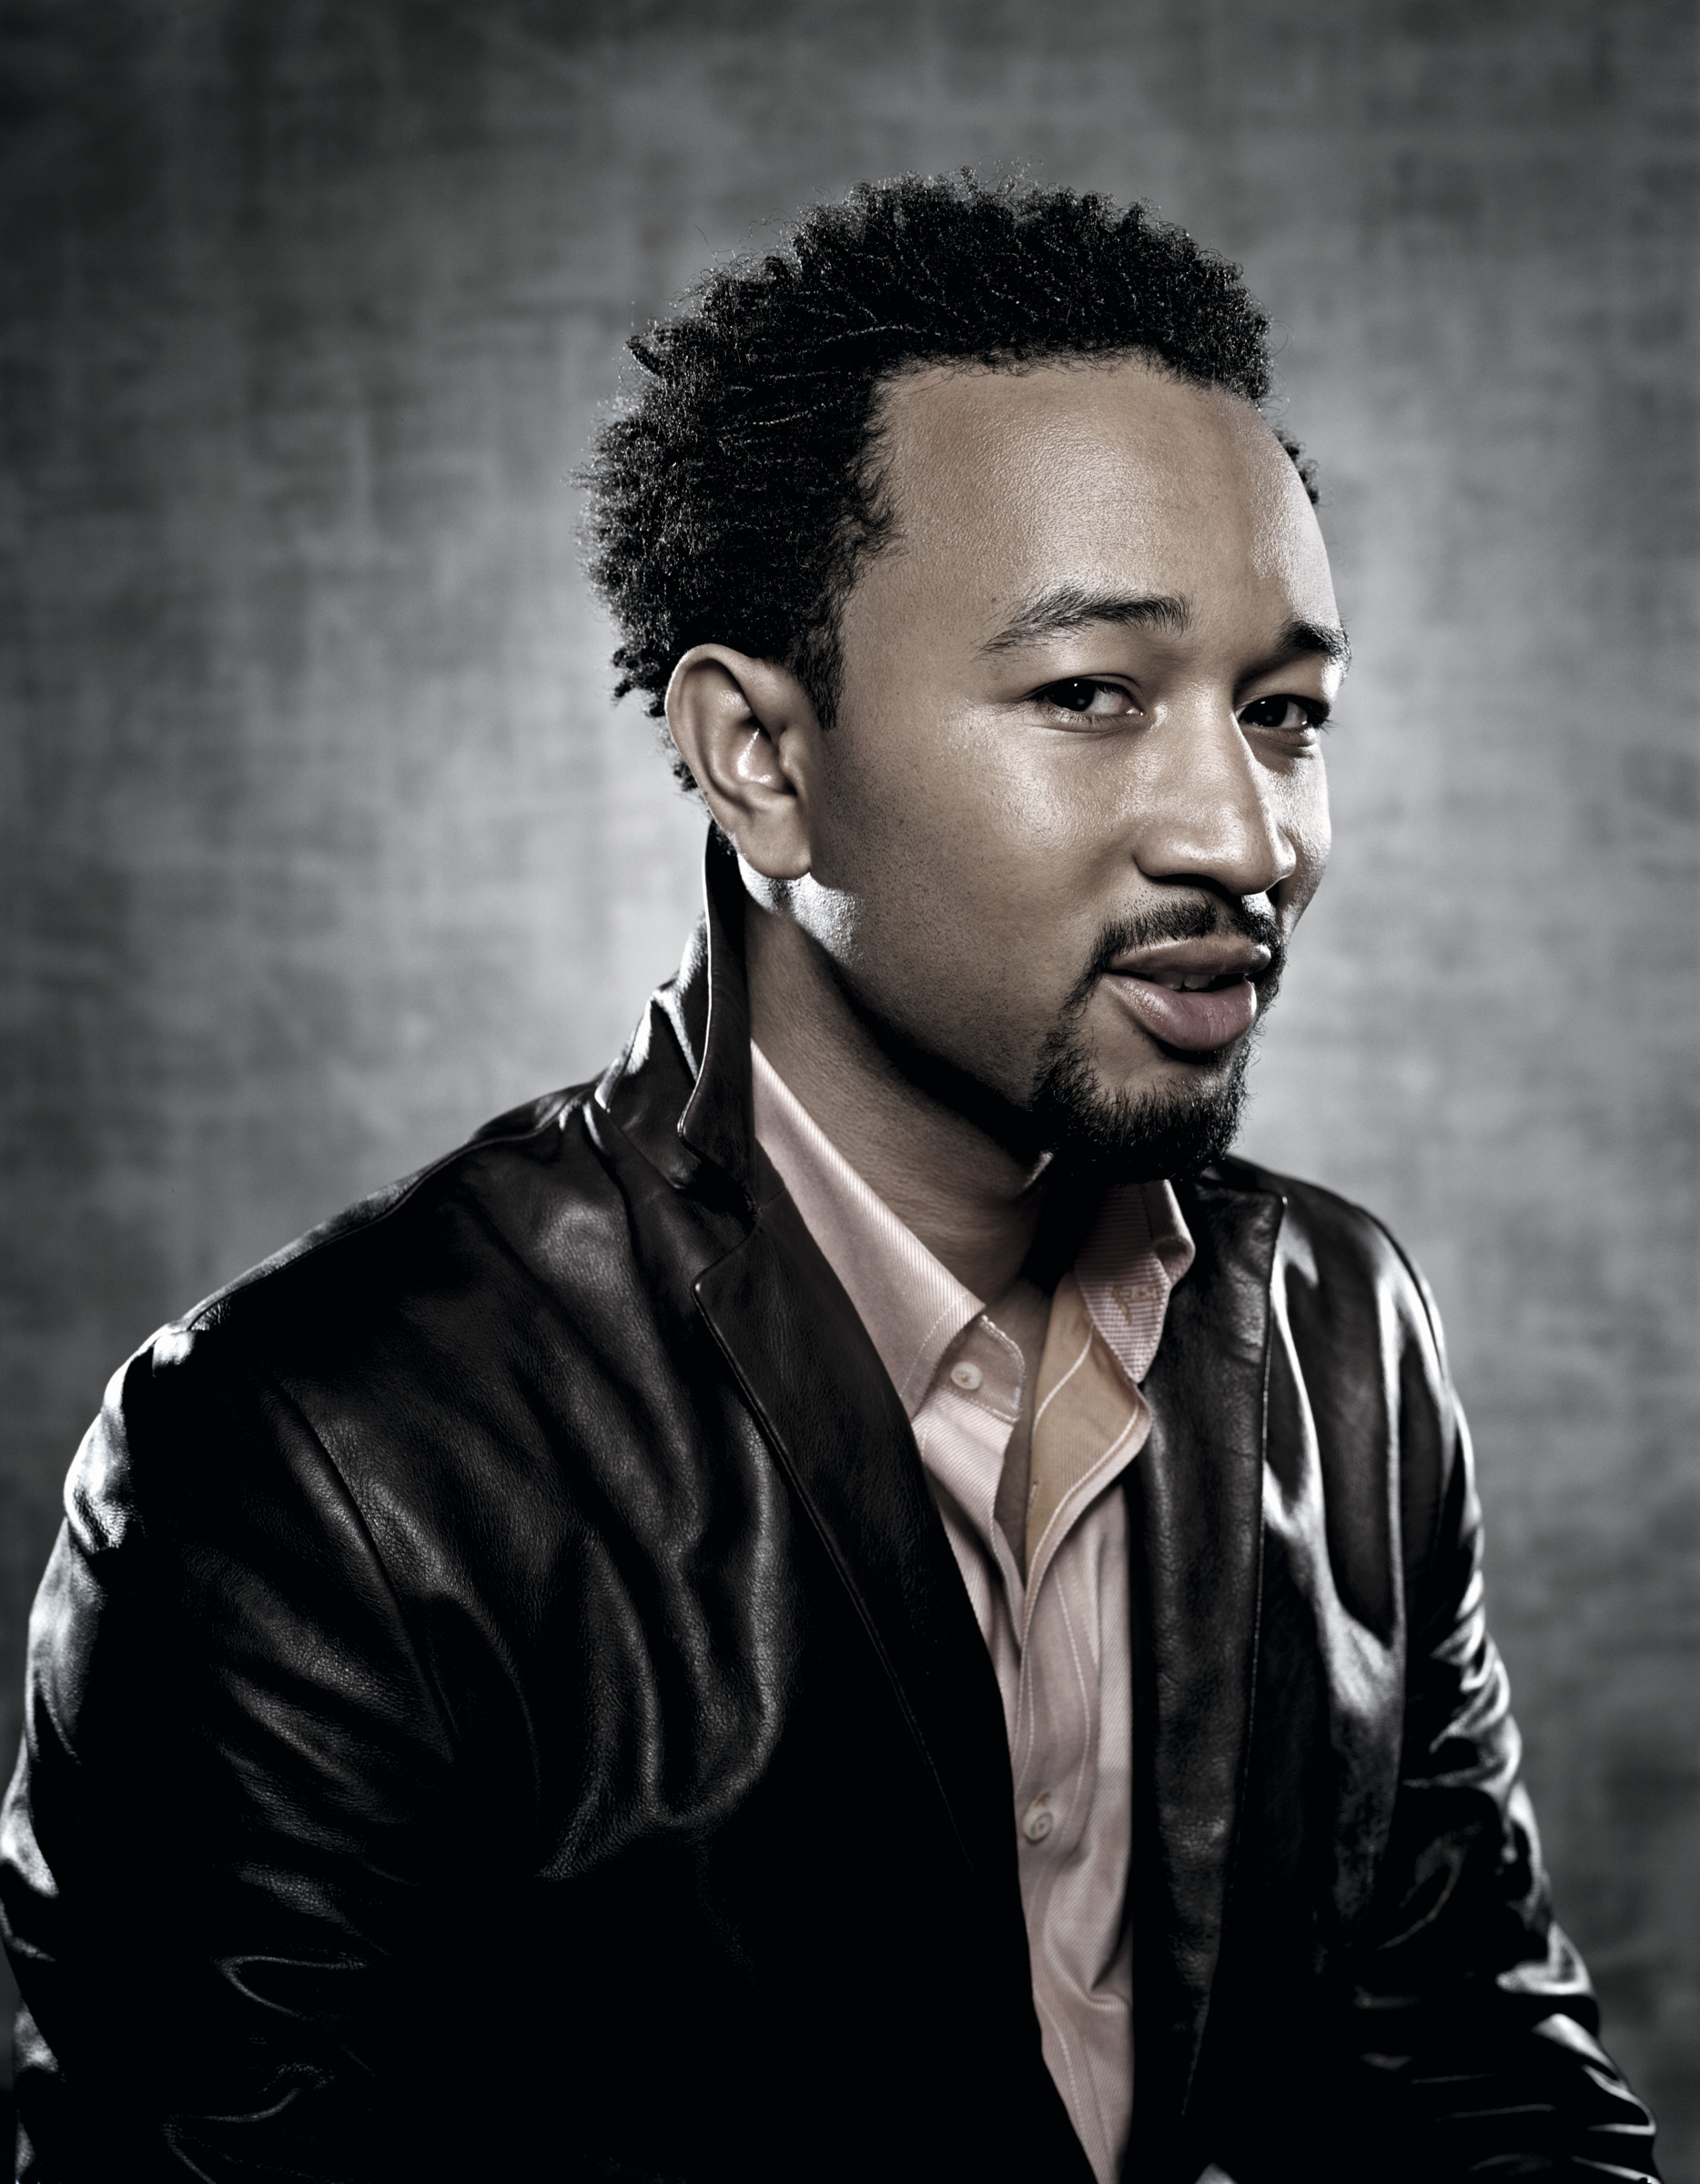 john legend love me nowjohn legend all of me, john legend all of me скачать, john legend love me now, john legend start a fire, john legend – all of me перевод, john legend all of me lyrics, john legend one woman man, john legend tonight, john legend start a fire перевод, john legend start a fire скачать, john legend песни, john legend made to love скачать, john legend скачать, john legend what you do to me, john legend all of me аккорды, john legend all of me минус, john legend darkness and light, john legend who did that to you, john legend all of me ноты, john legend start a fire lyrics